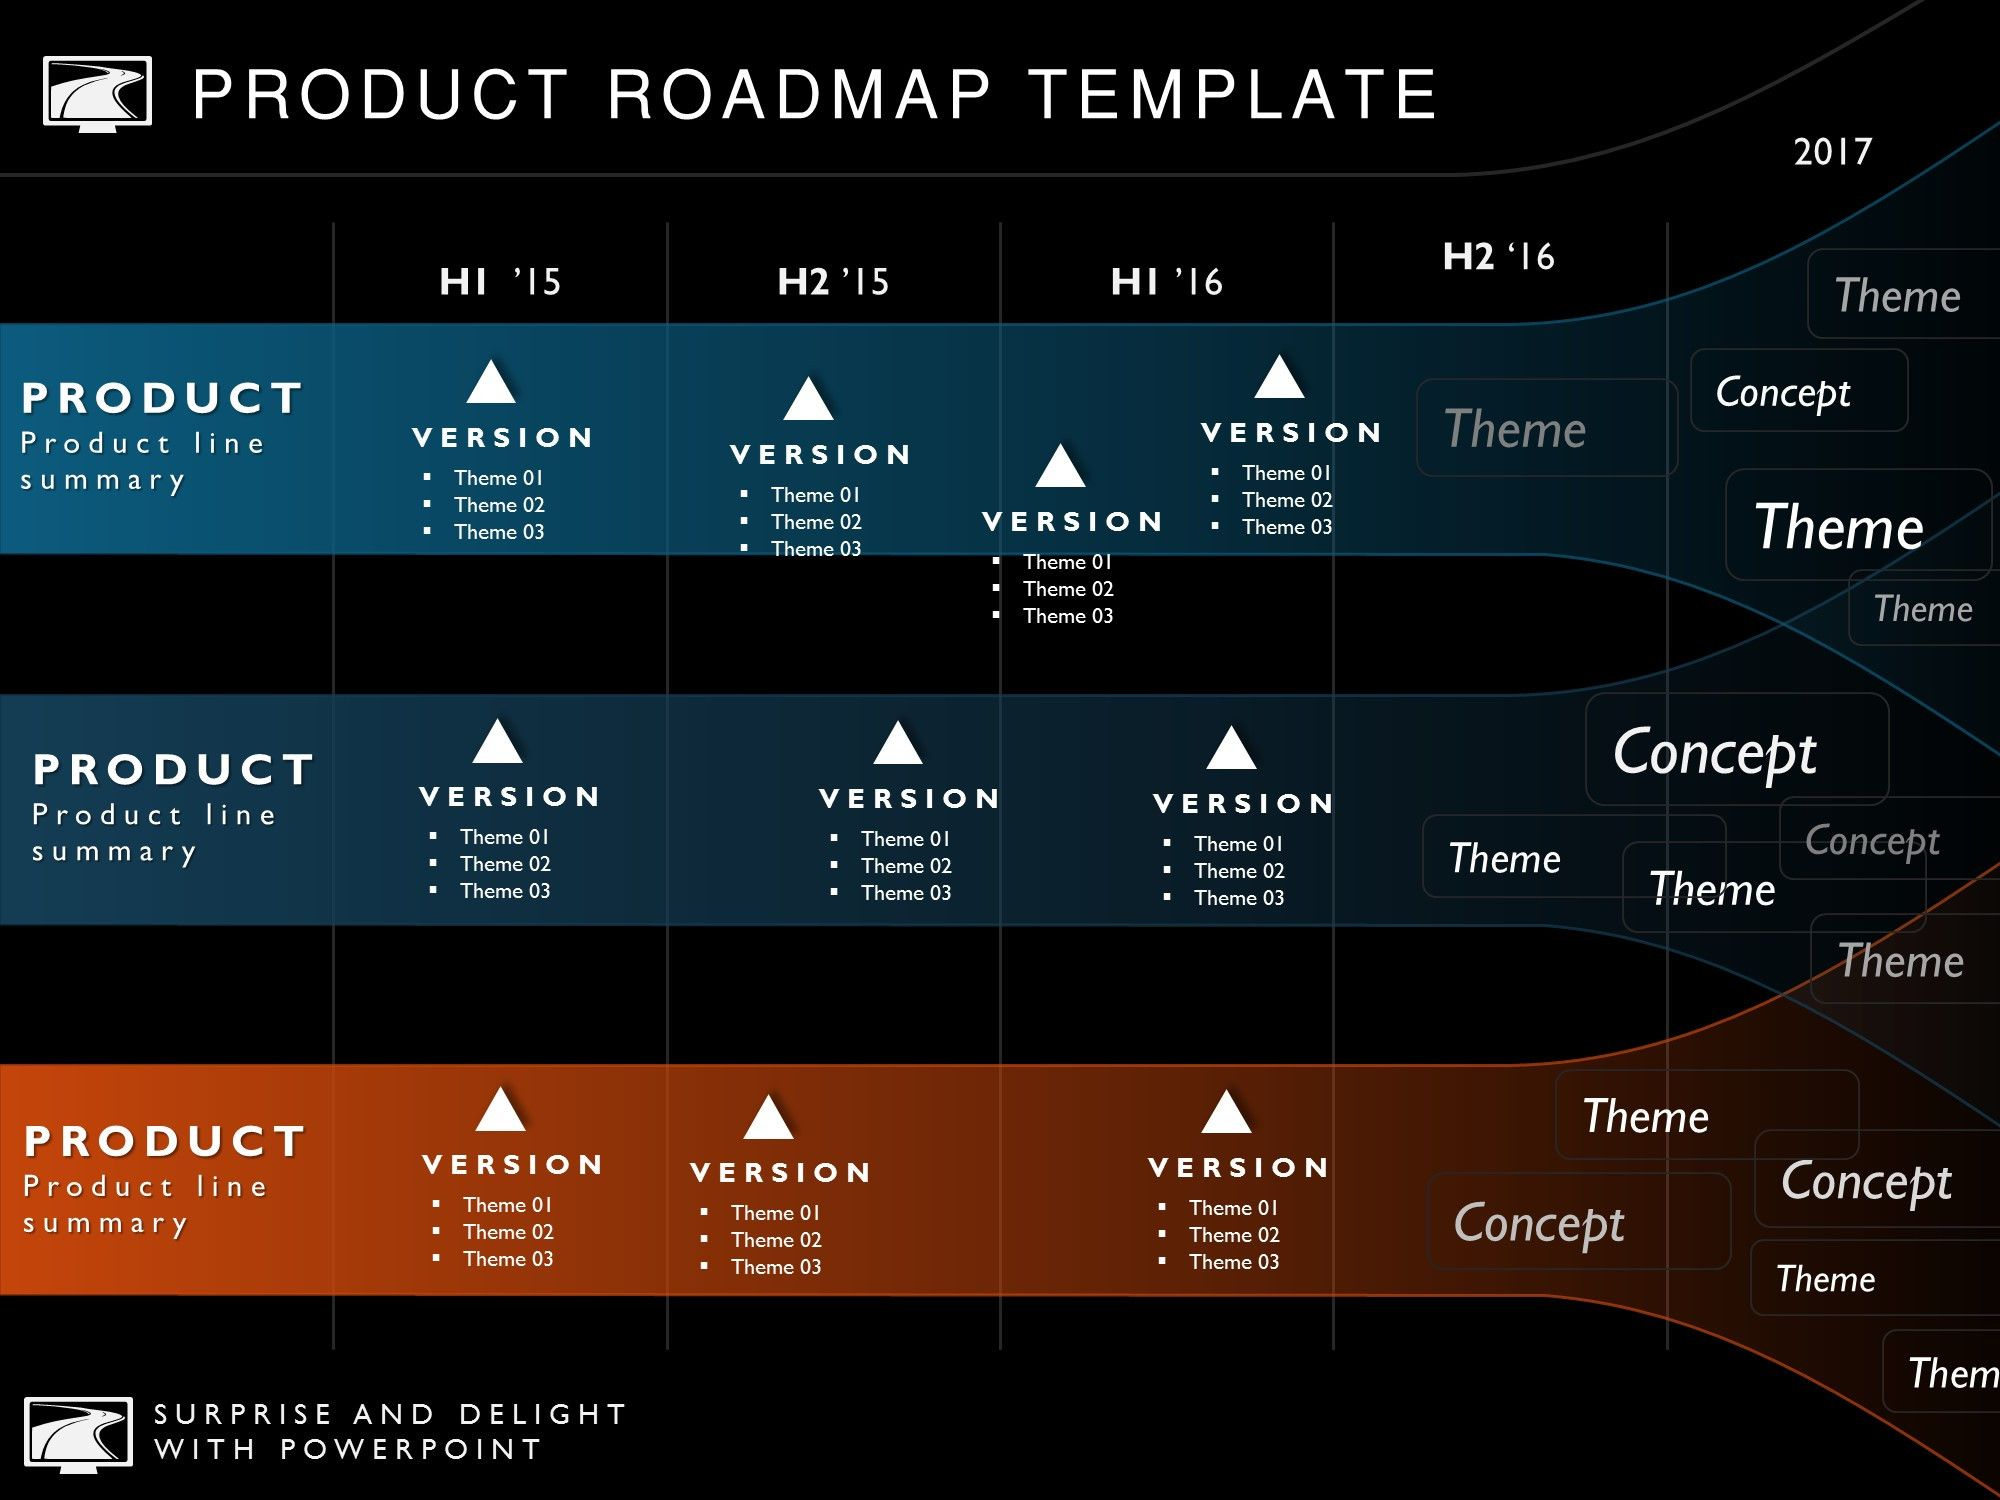 Six Phase Development Strategy Timeline Roadmap Presentation